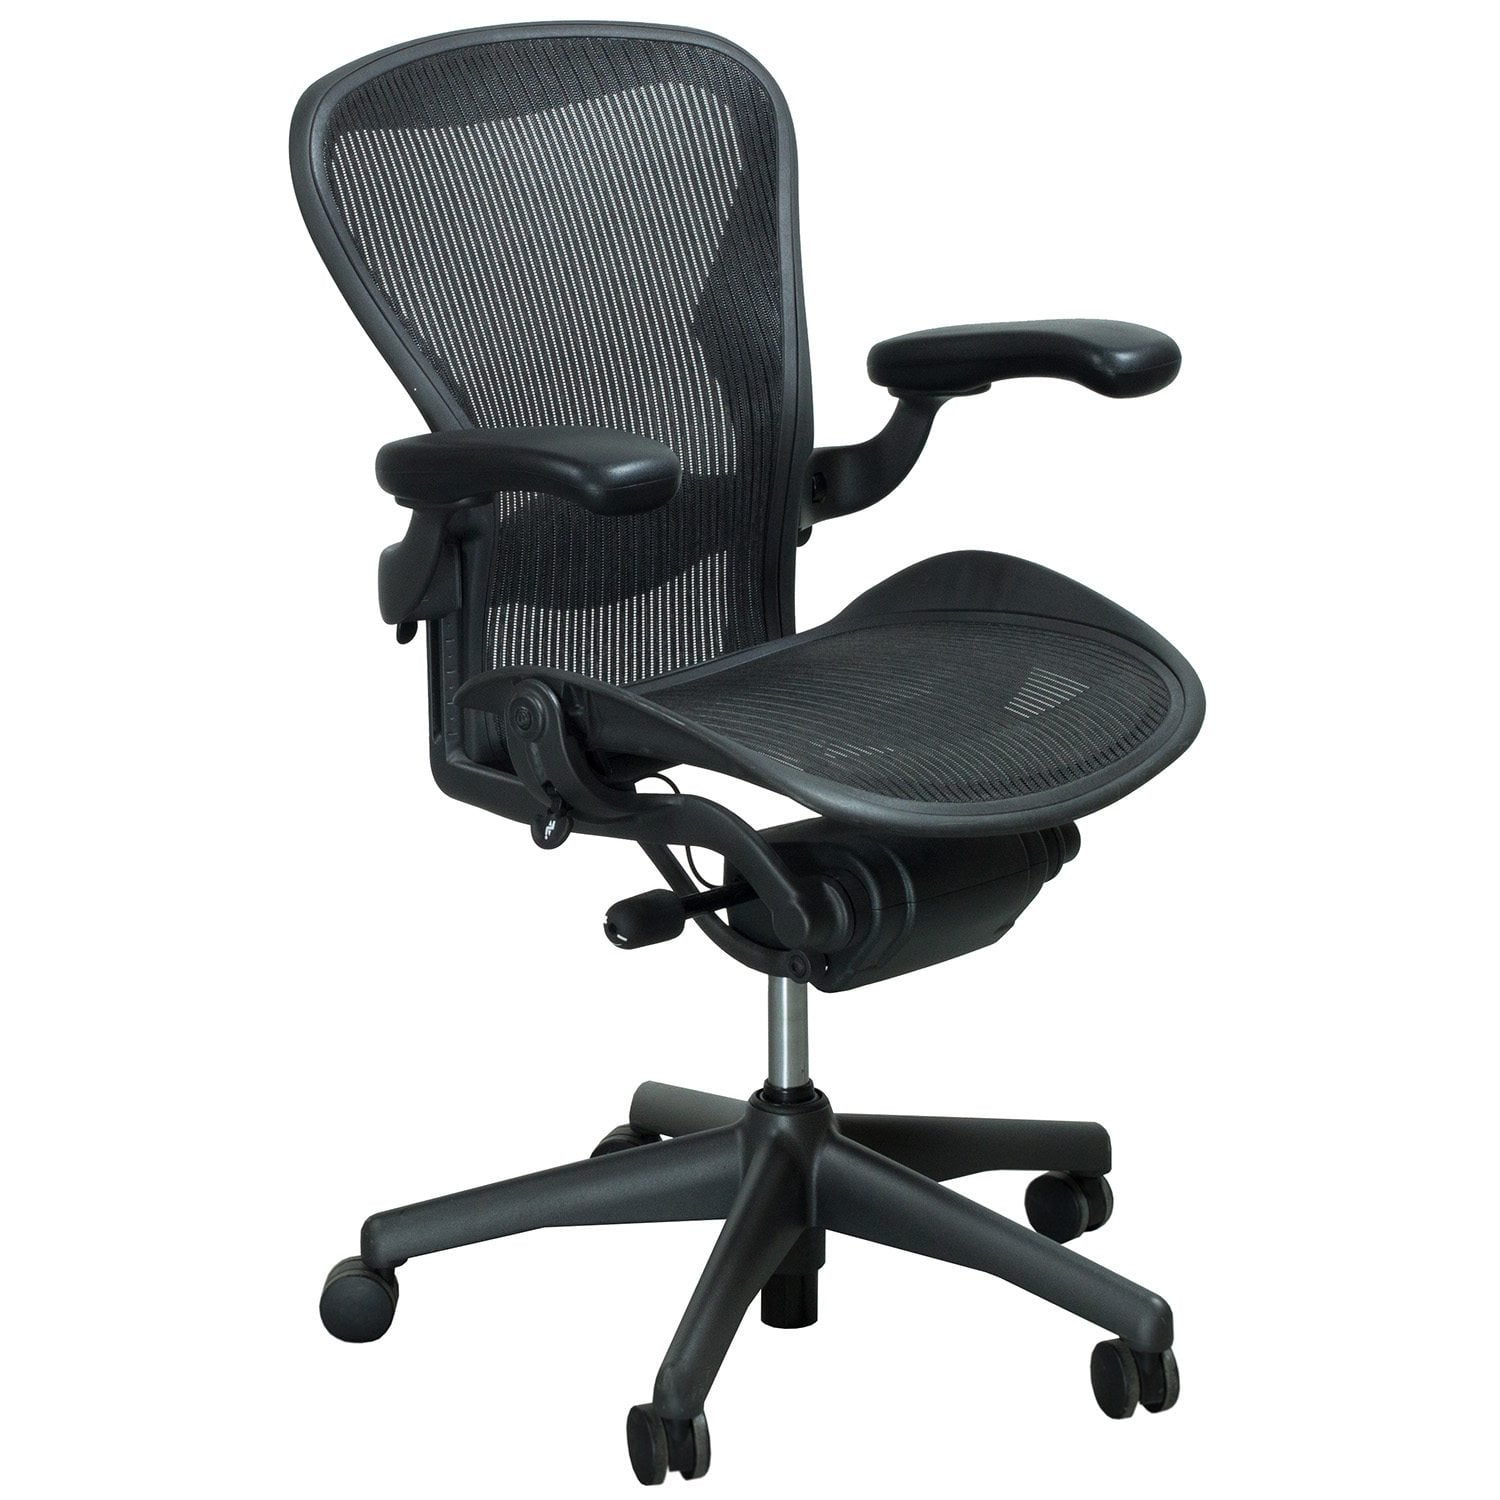 ergonomic chair dimensions scan design chairs herman miller aeron used size b full function task